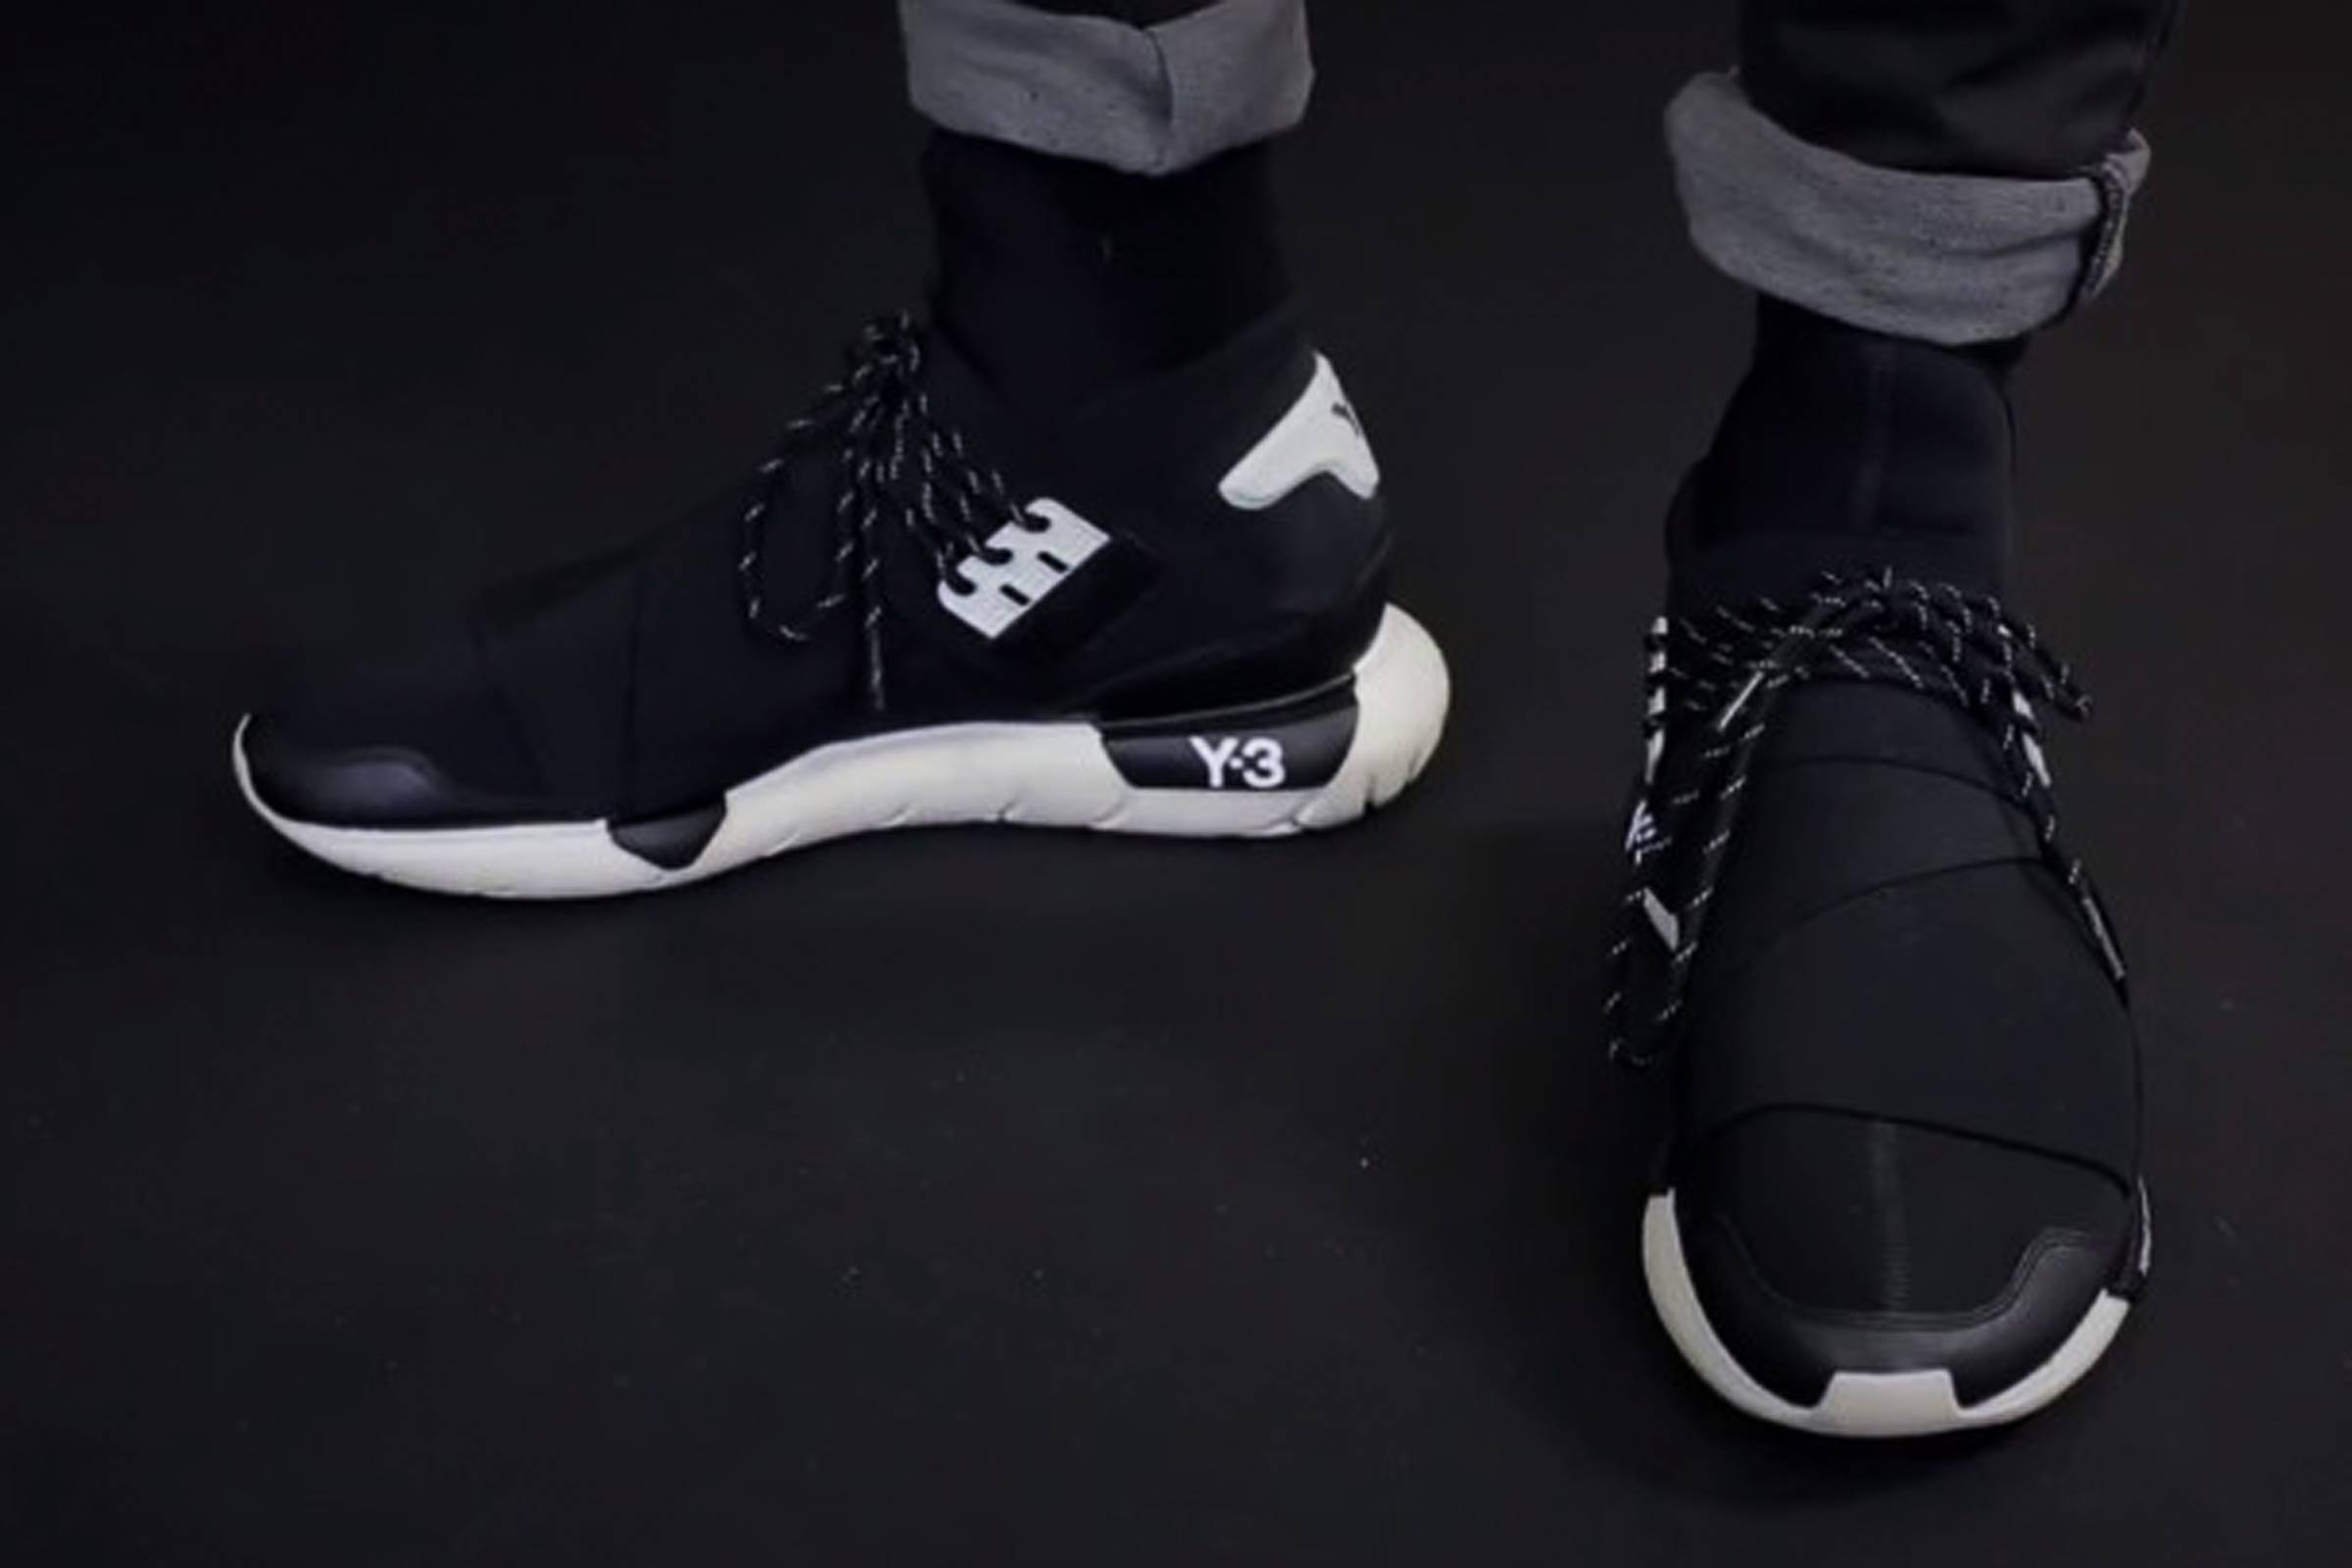 The first released iteration of the Y-3, debuting during the Fall/Winter 2013 season